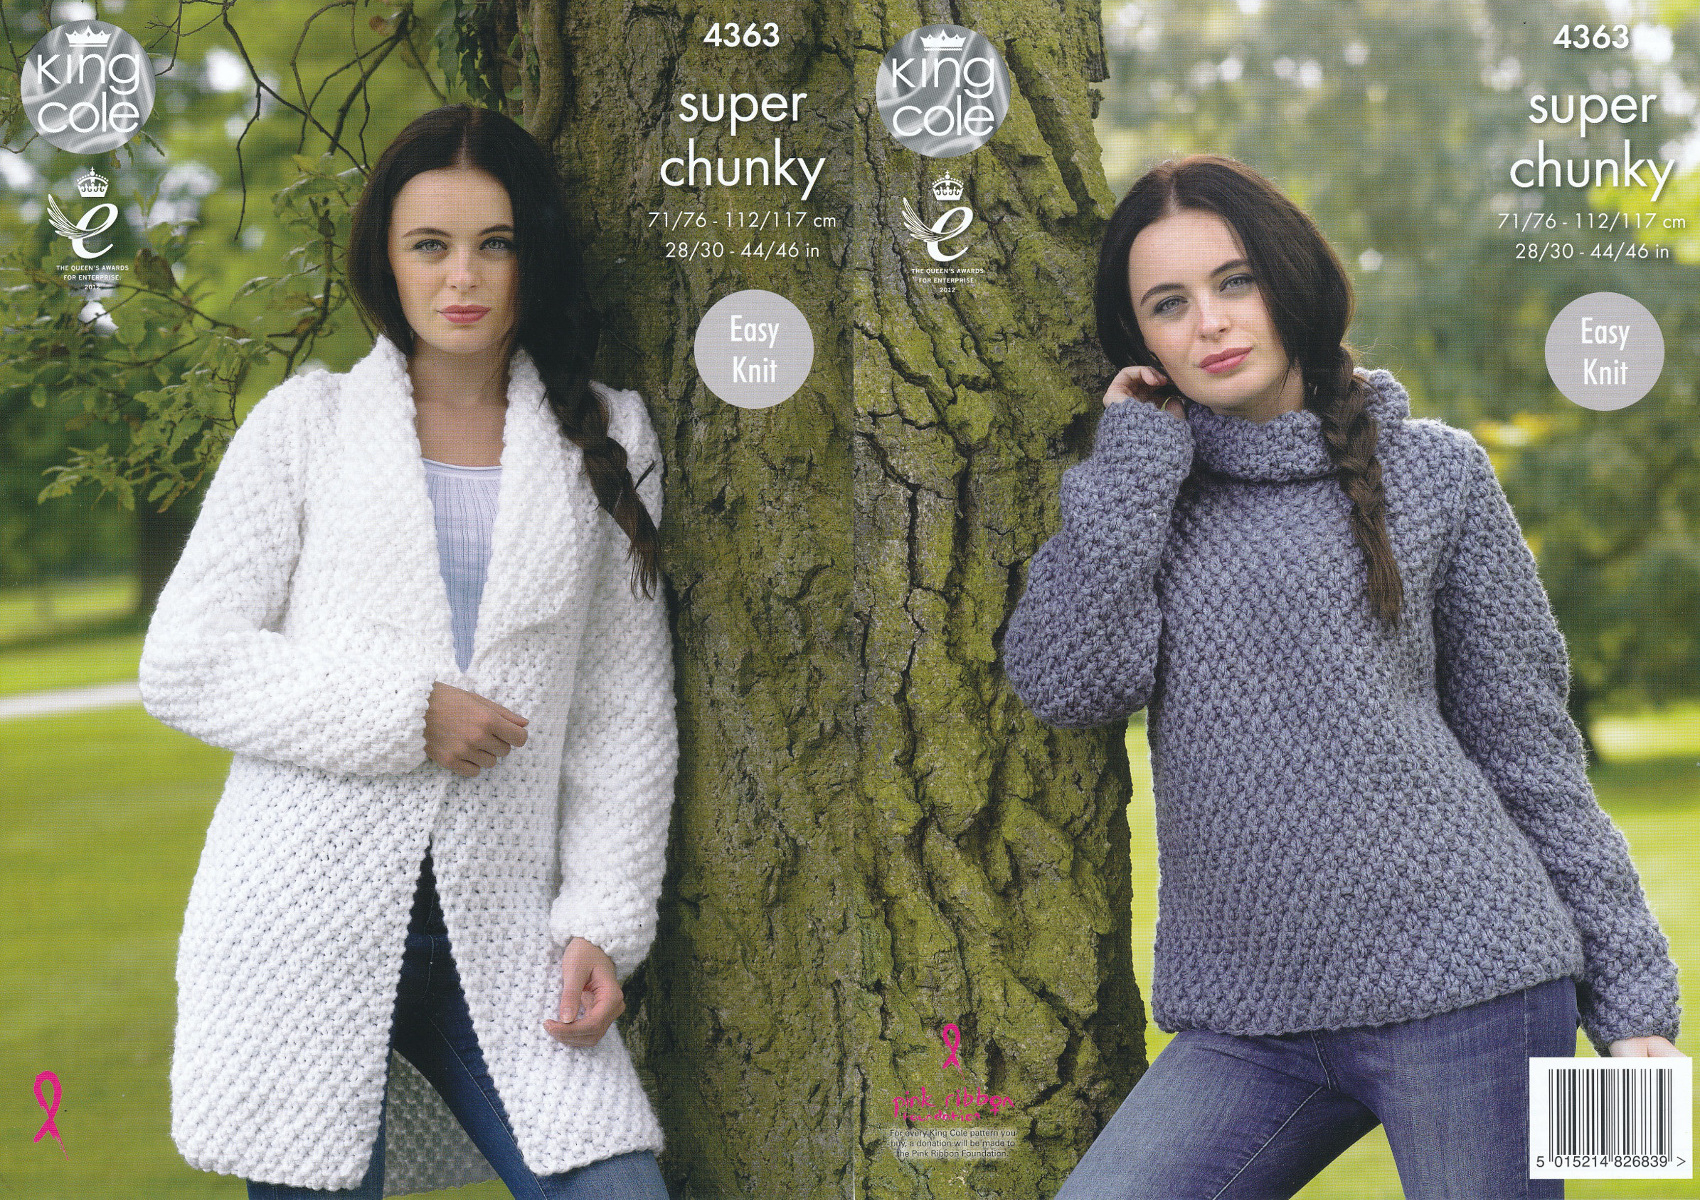 Knitting Patterns For Women Details About Ladies Super Chunky Knitting Pattern King Cole Easy Knit Sweater Jacket 4363